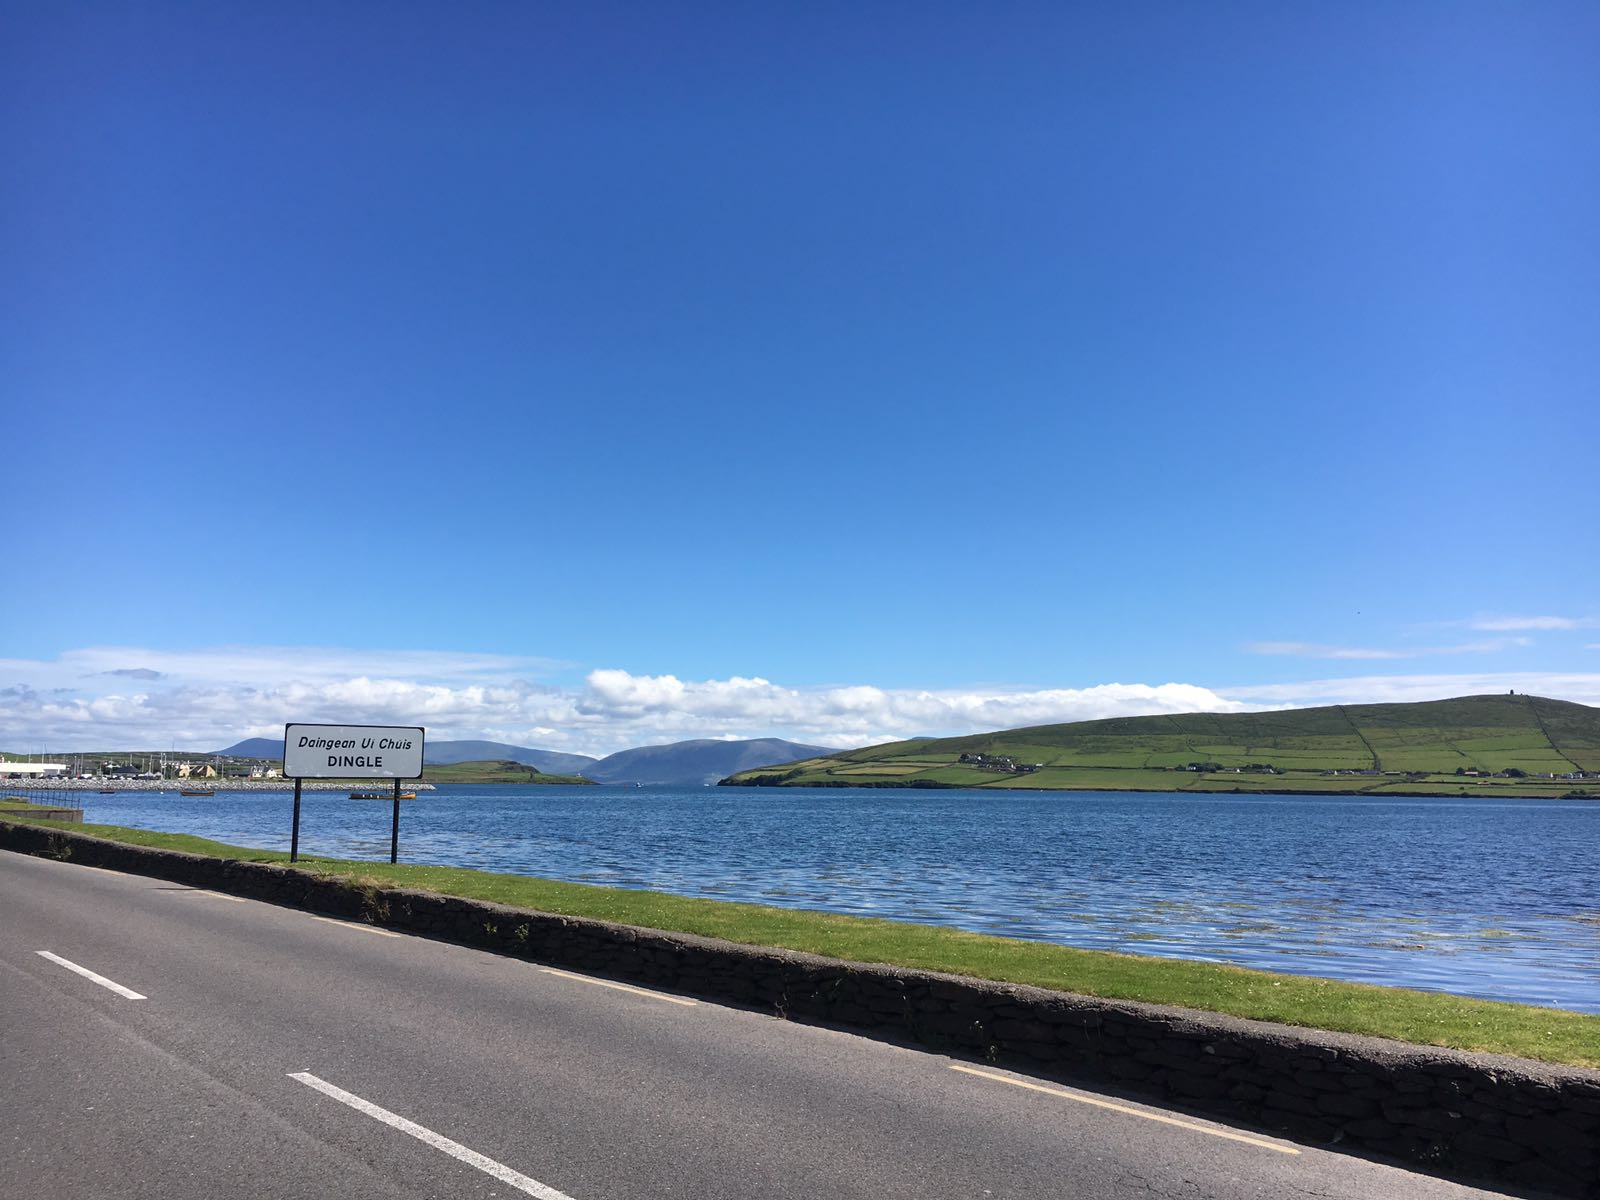 Returning to Dingle from the West